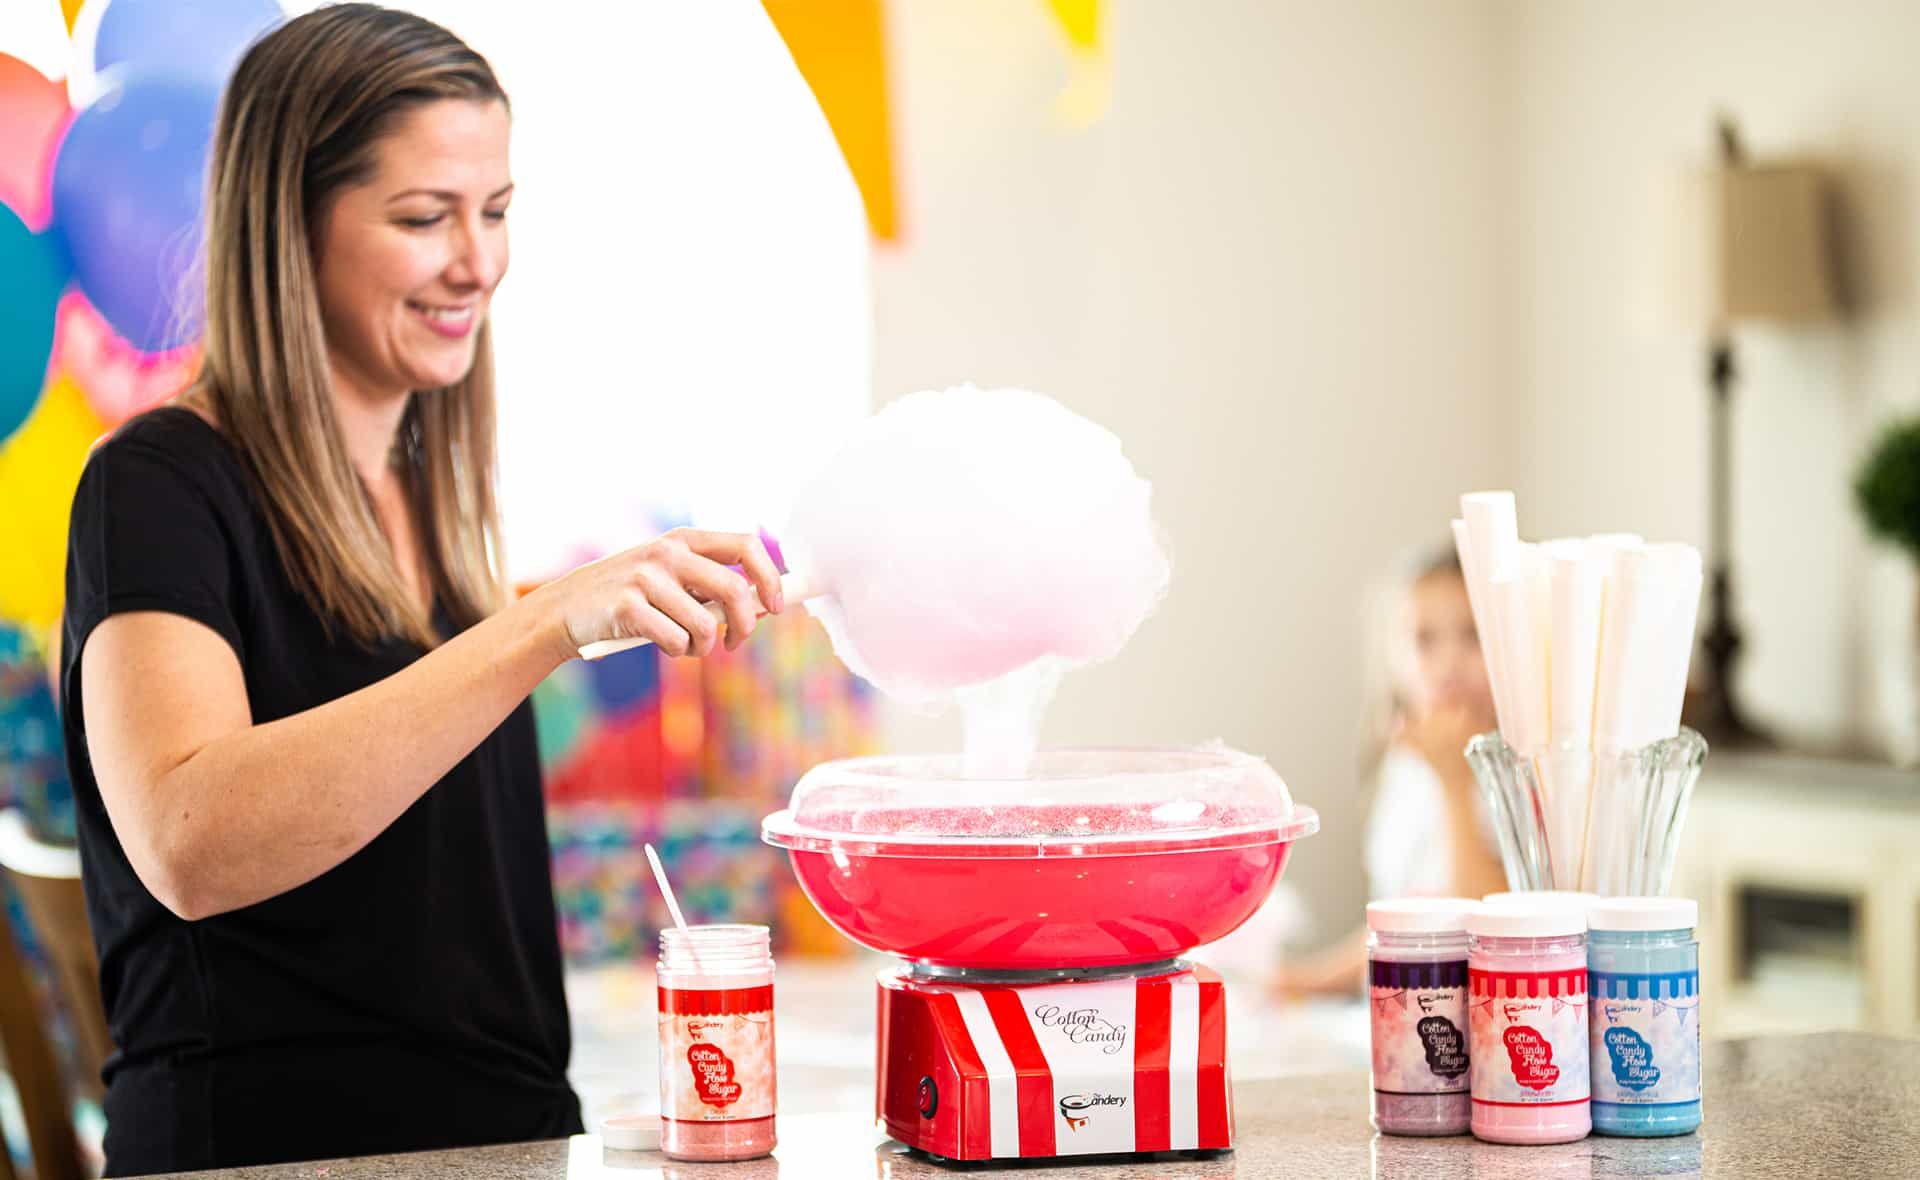 Kids Cotton Candy Machine Product Photo with Male Model by Results Imagery